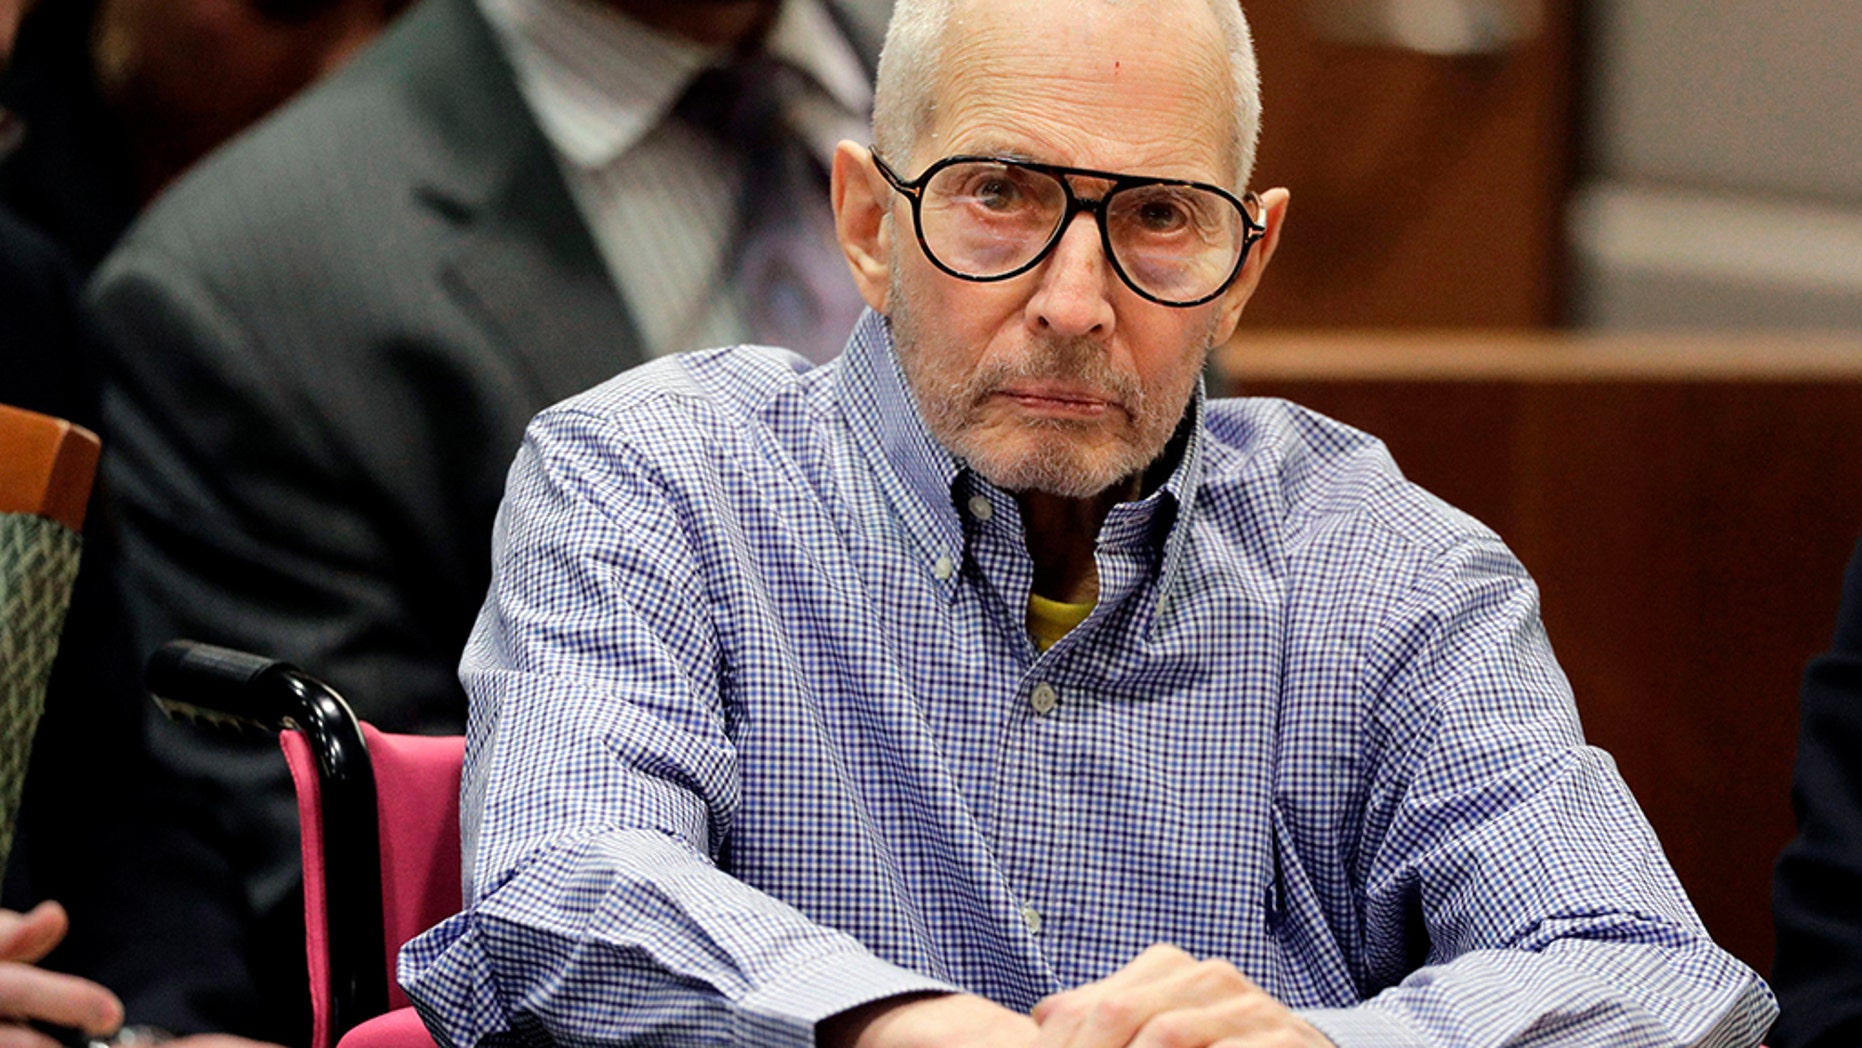 Robert Durst, the New York real estate heir who was the subject of a television documentary series, has been ordered to stand trial in the murder of a friend in Los Angeles 18 years ago.